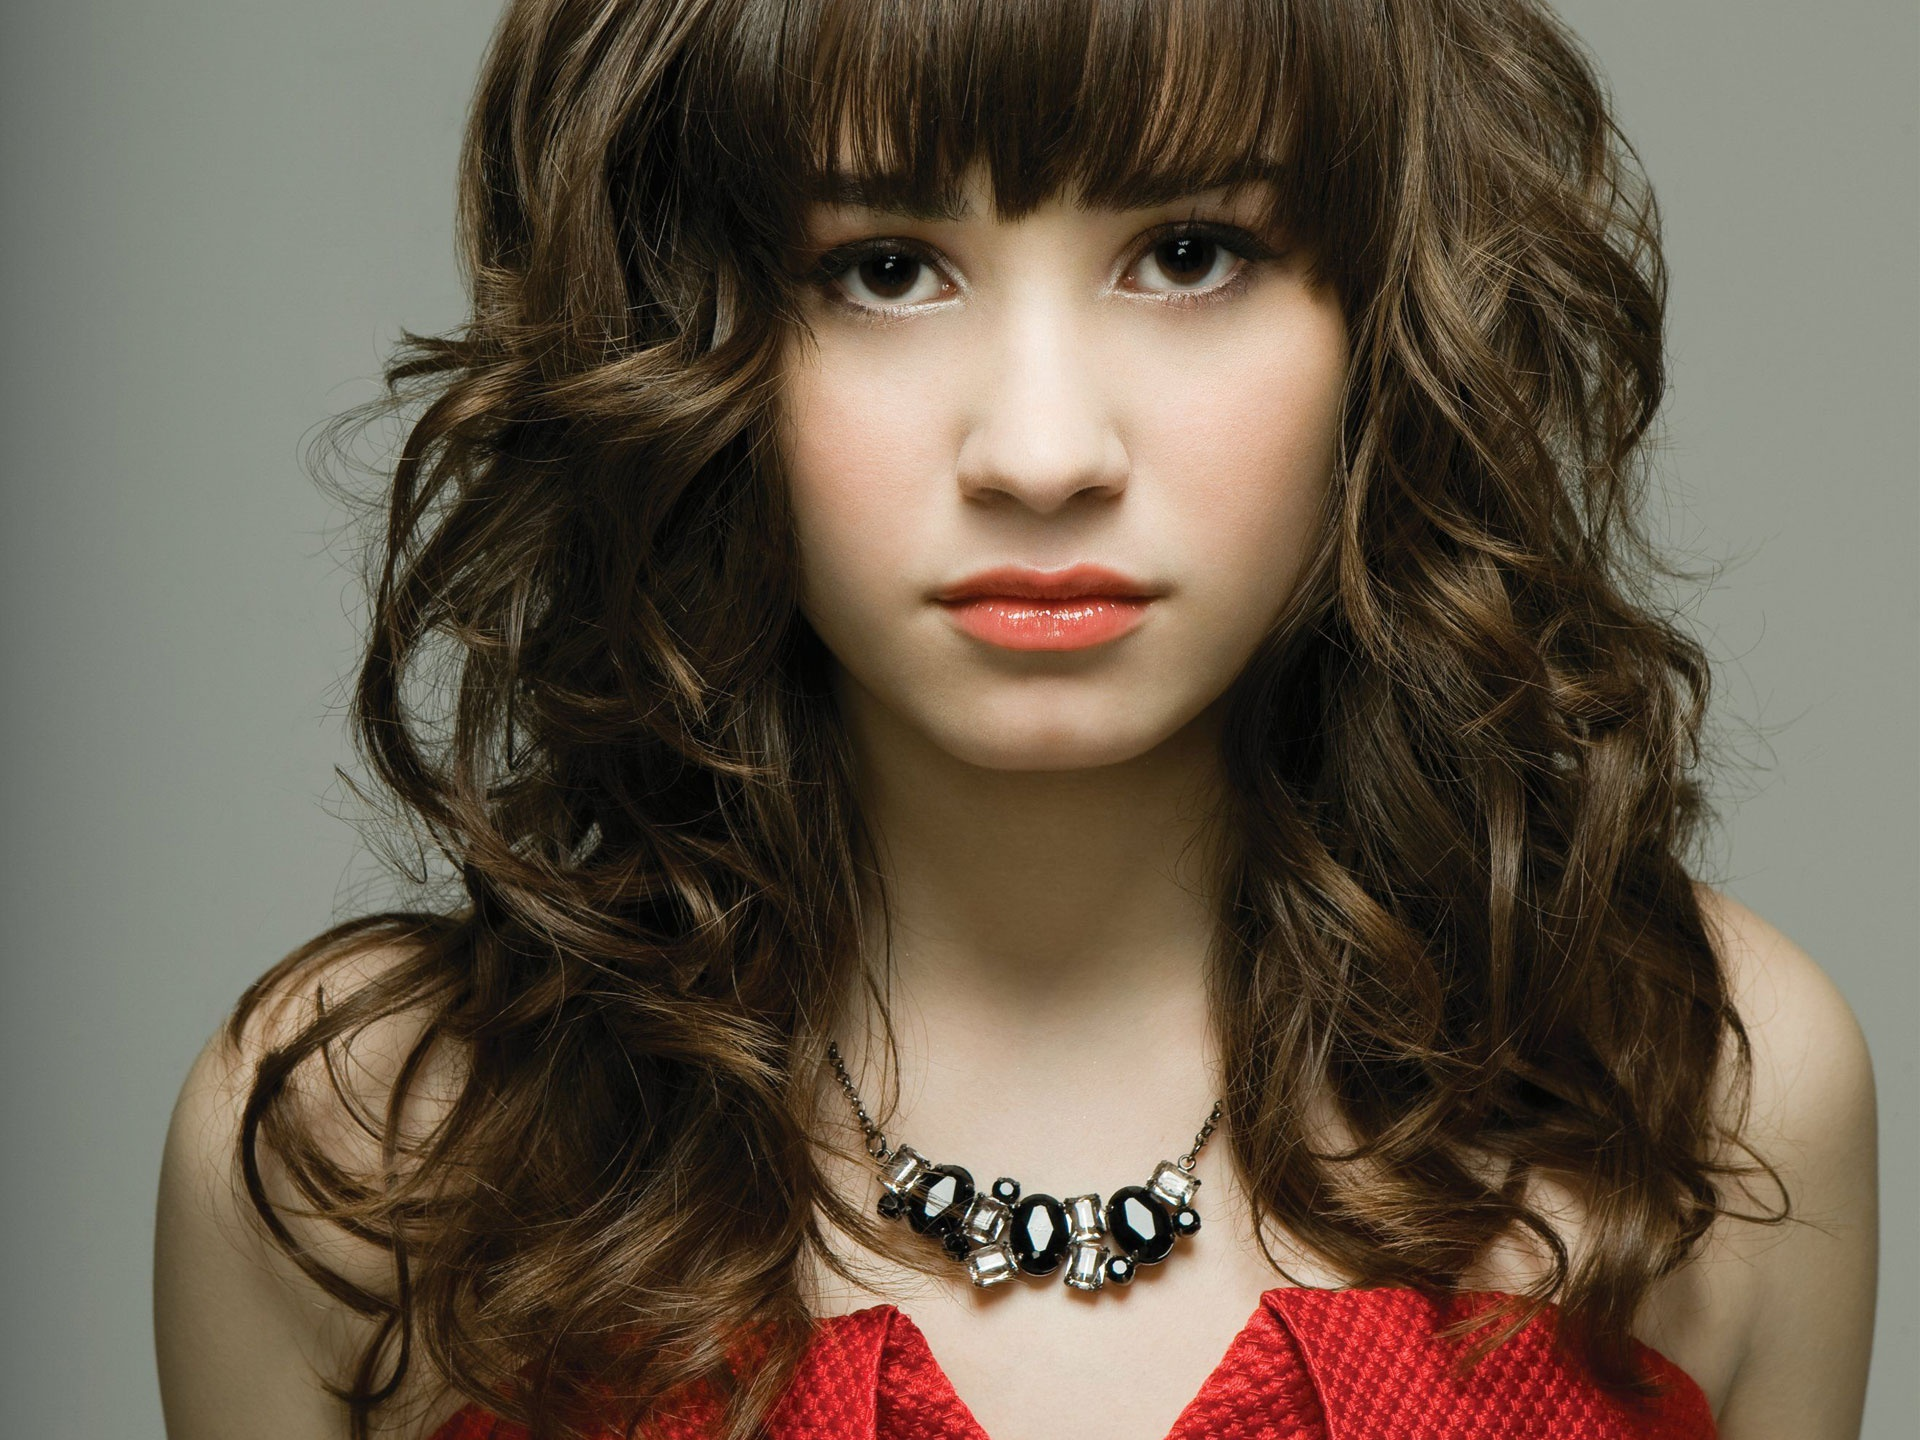 demi lovato images hd a21